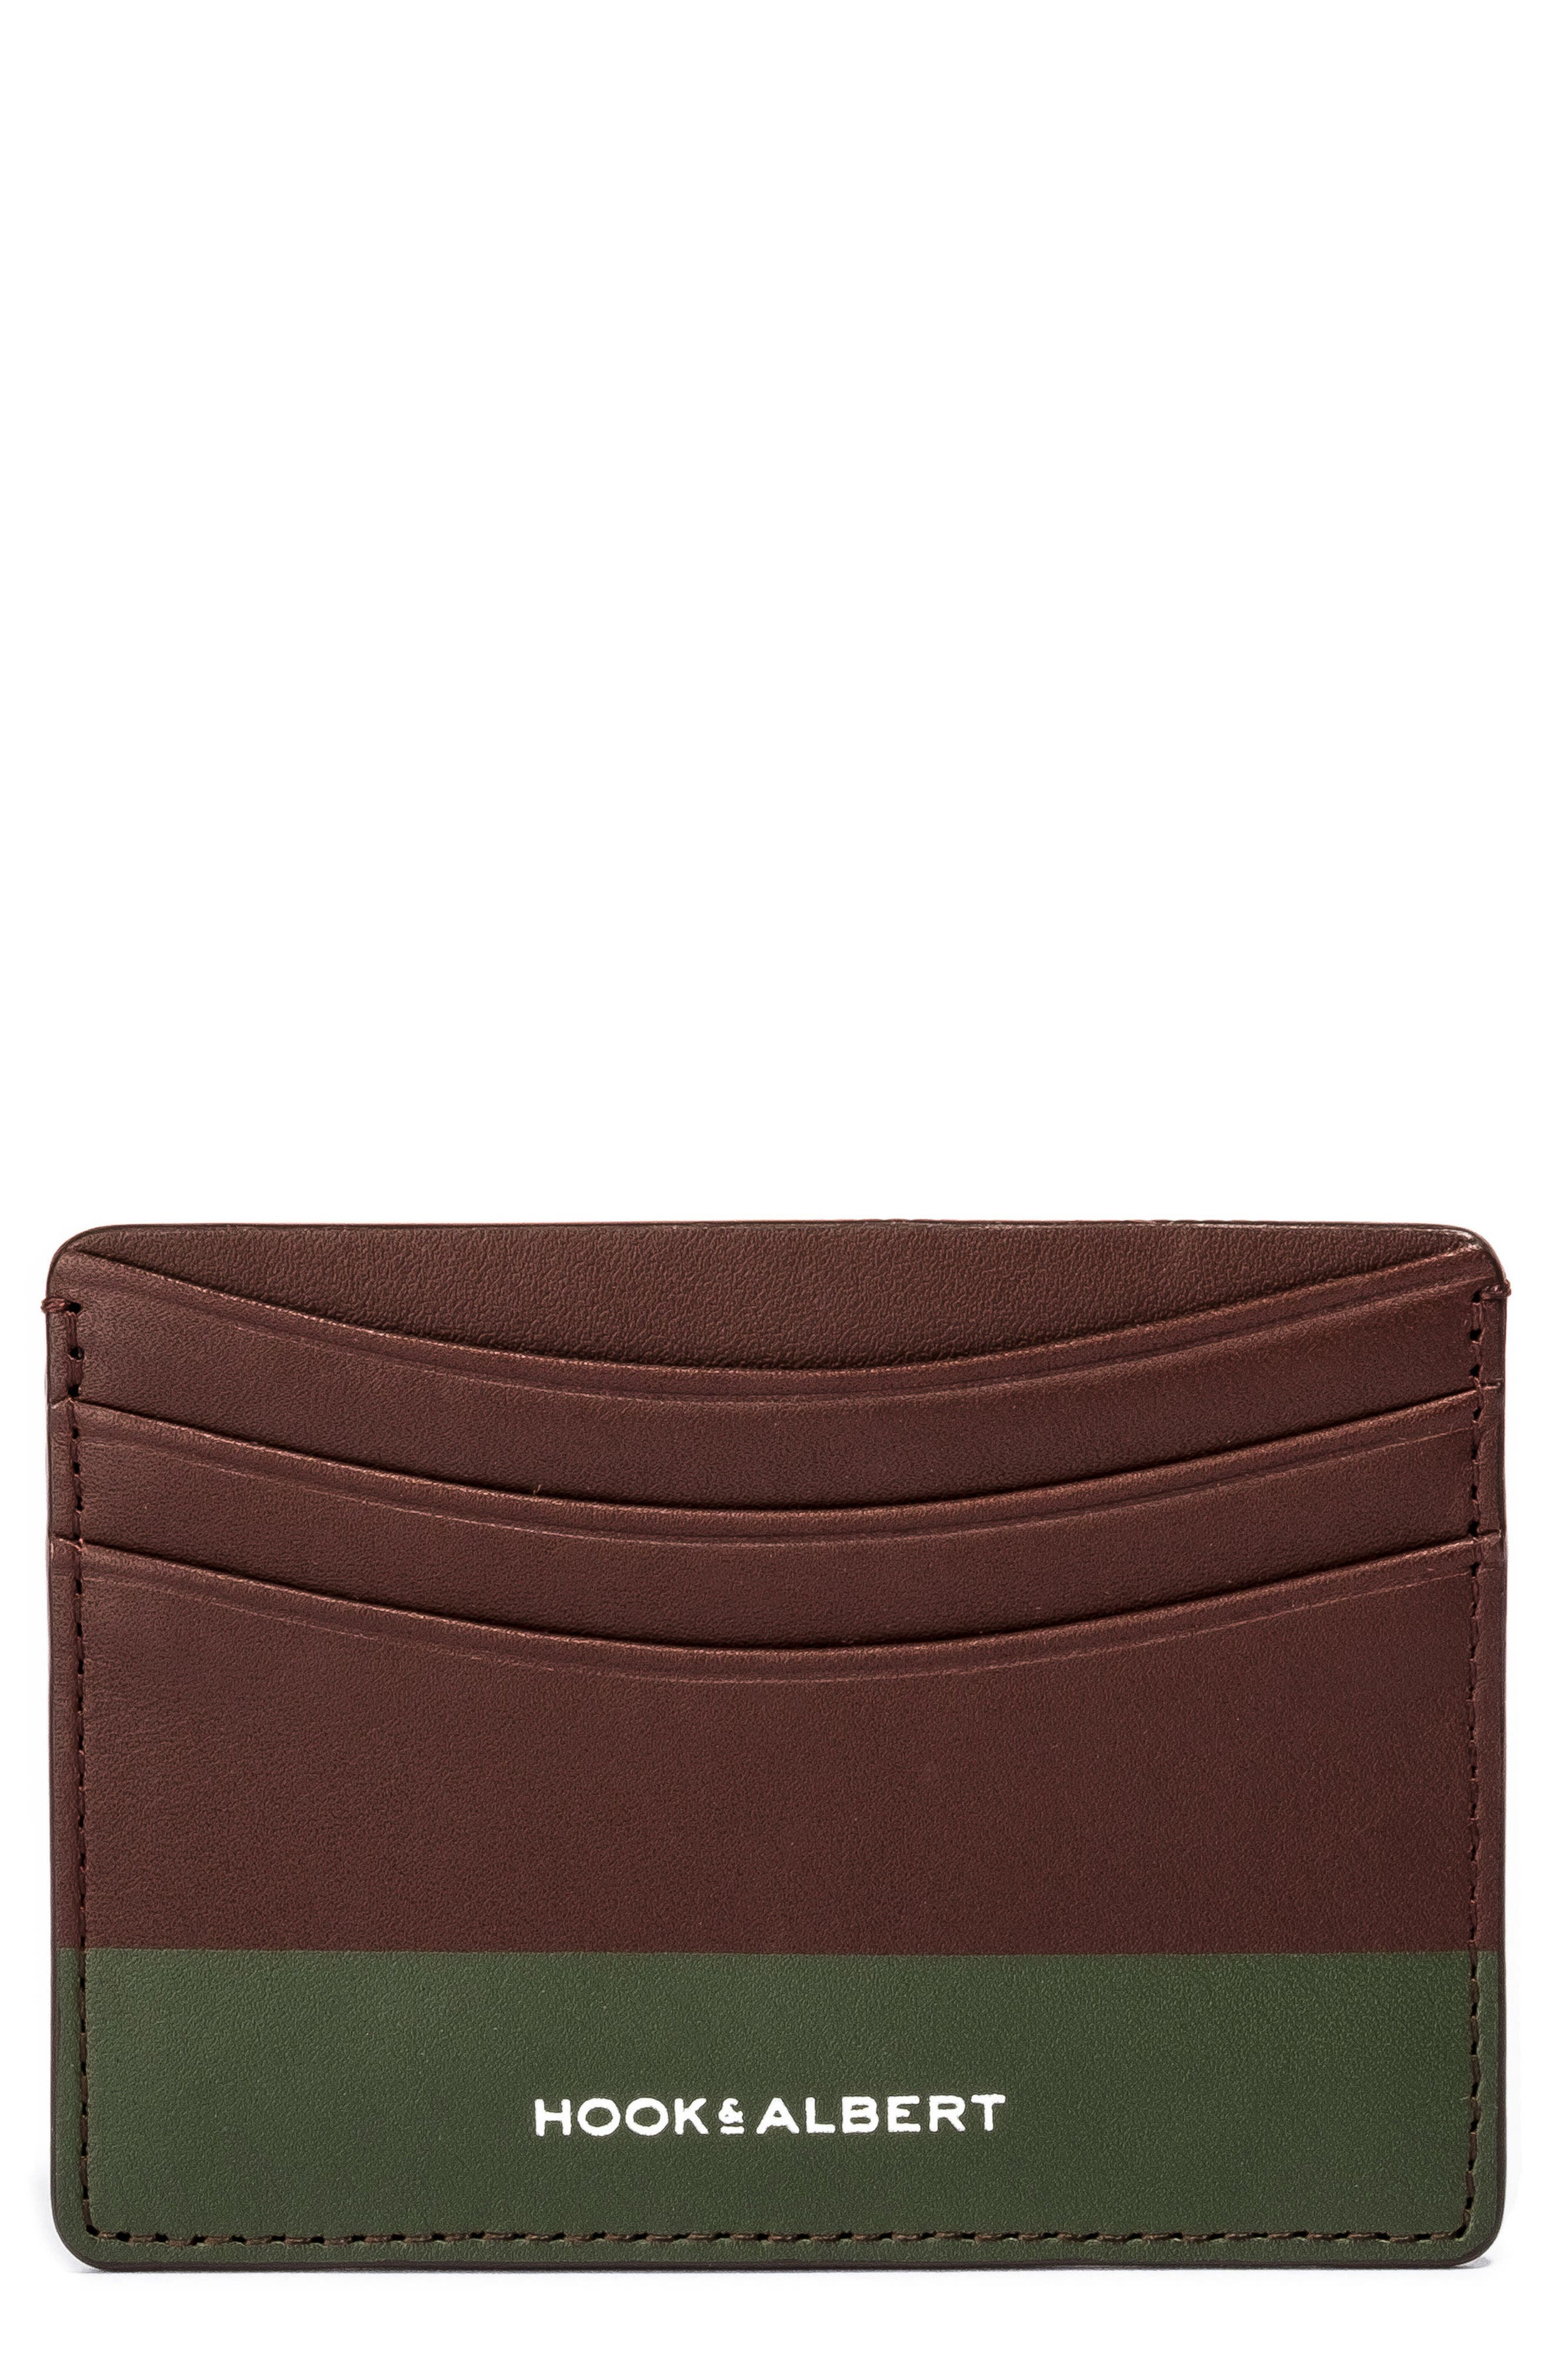 Leather Card Case,                         Main,                         color, Olive